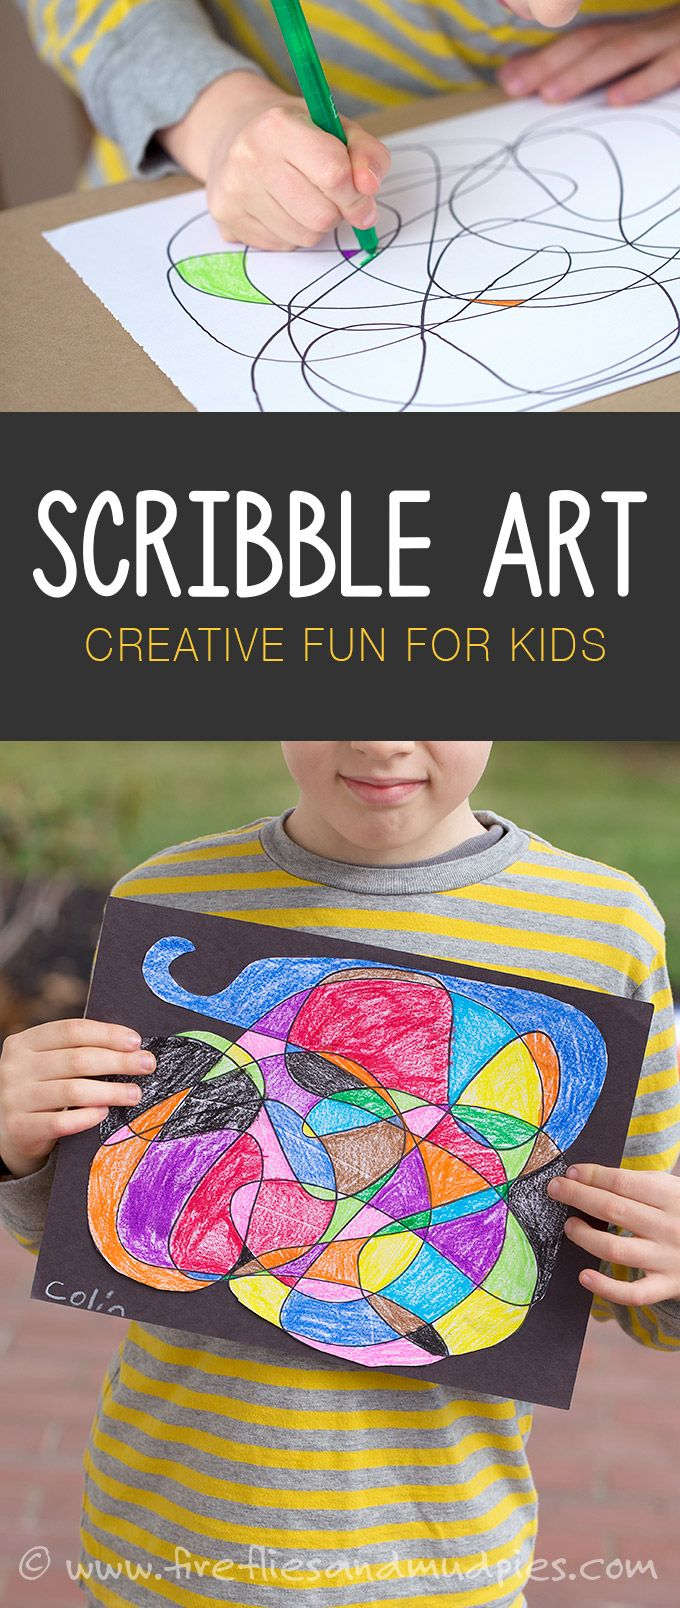 Scribble Art Is A Fun Boredom Busting Creative Activity For Kids Sponsored By MrSketchScentedCrayons